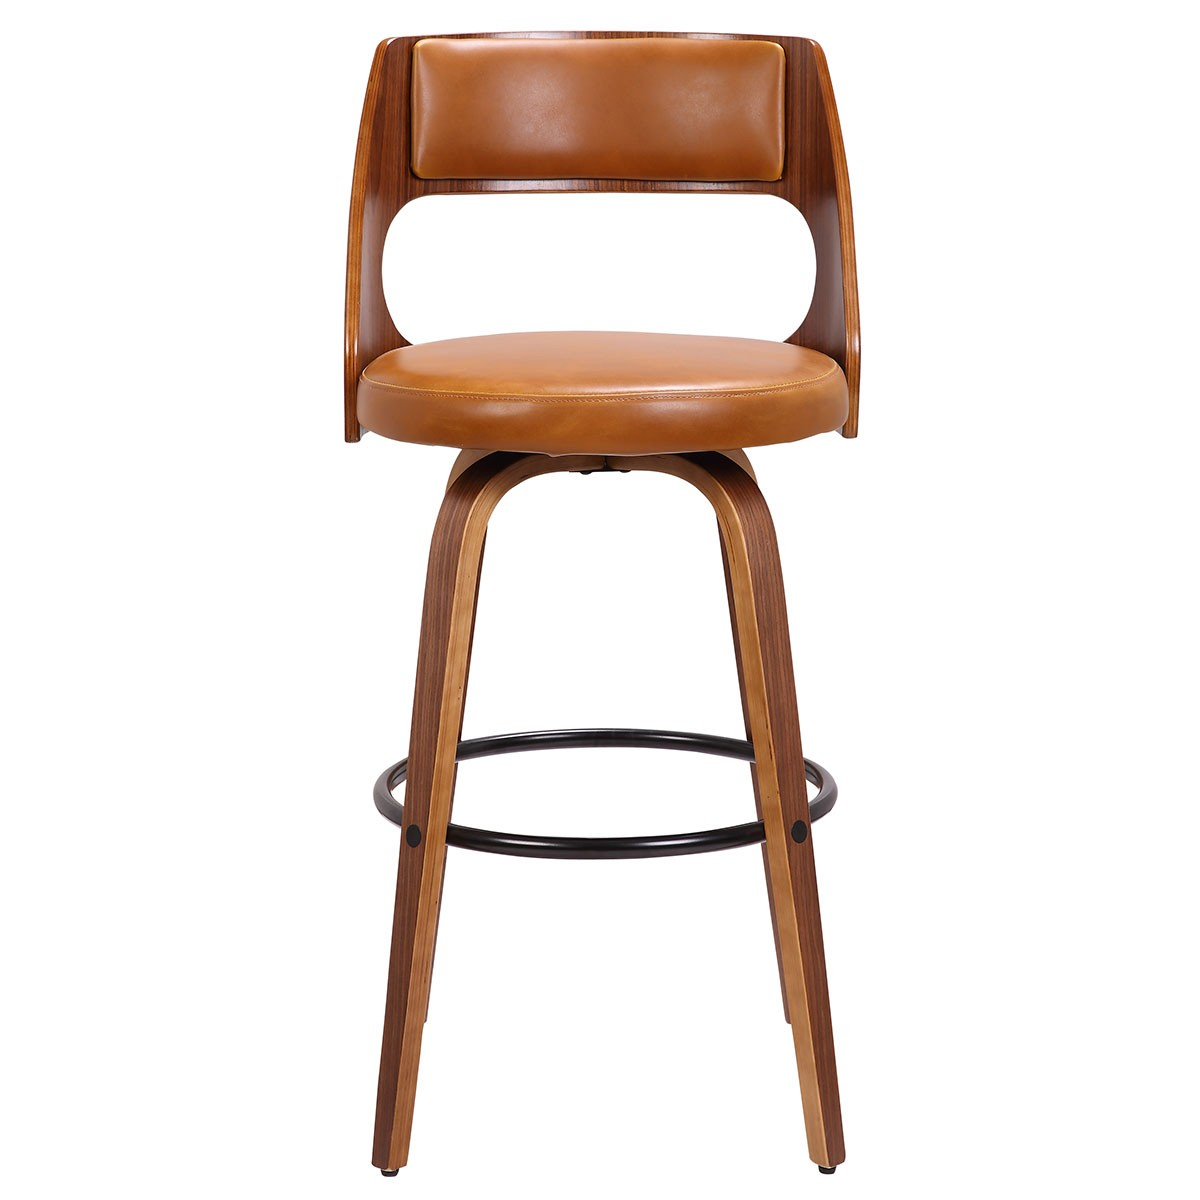 Oslo Commercial Grade Swivel Bar Stool, Tan / Walnut with Black Footrest